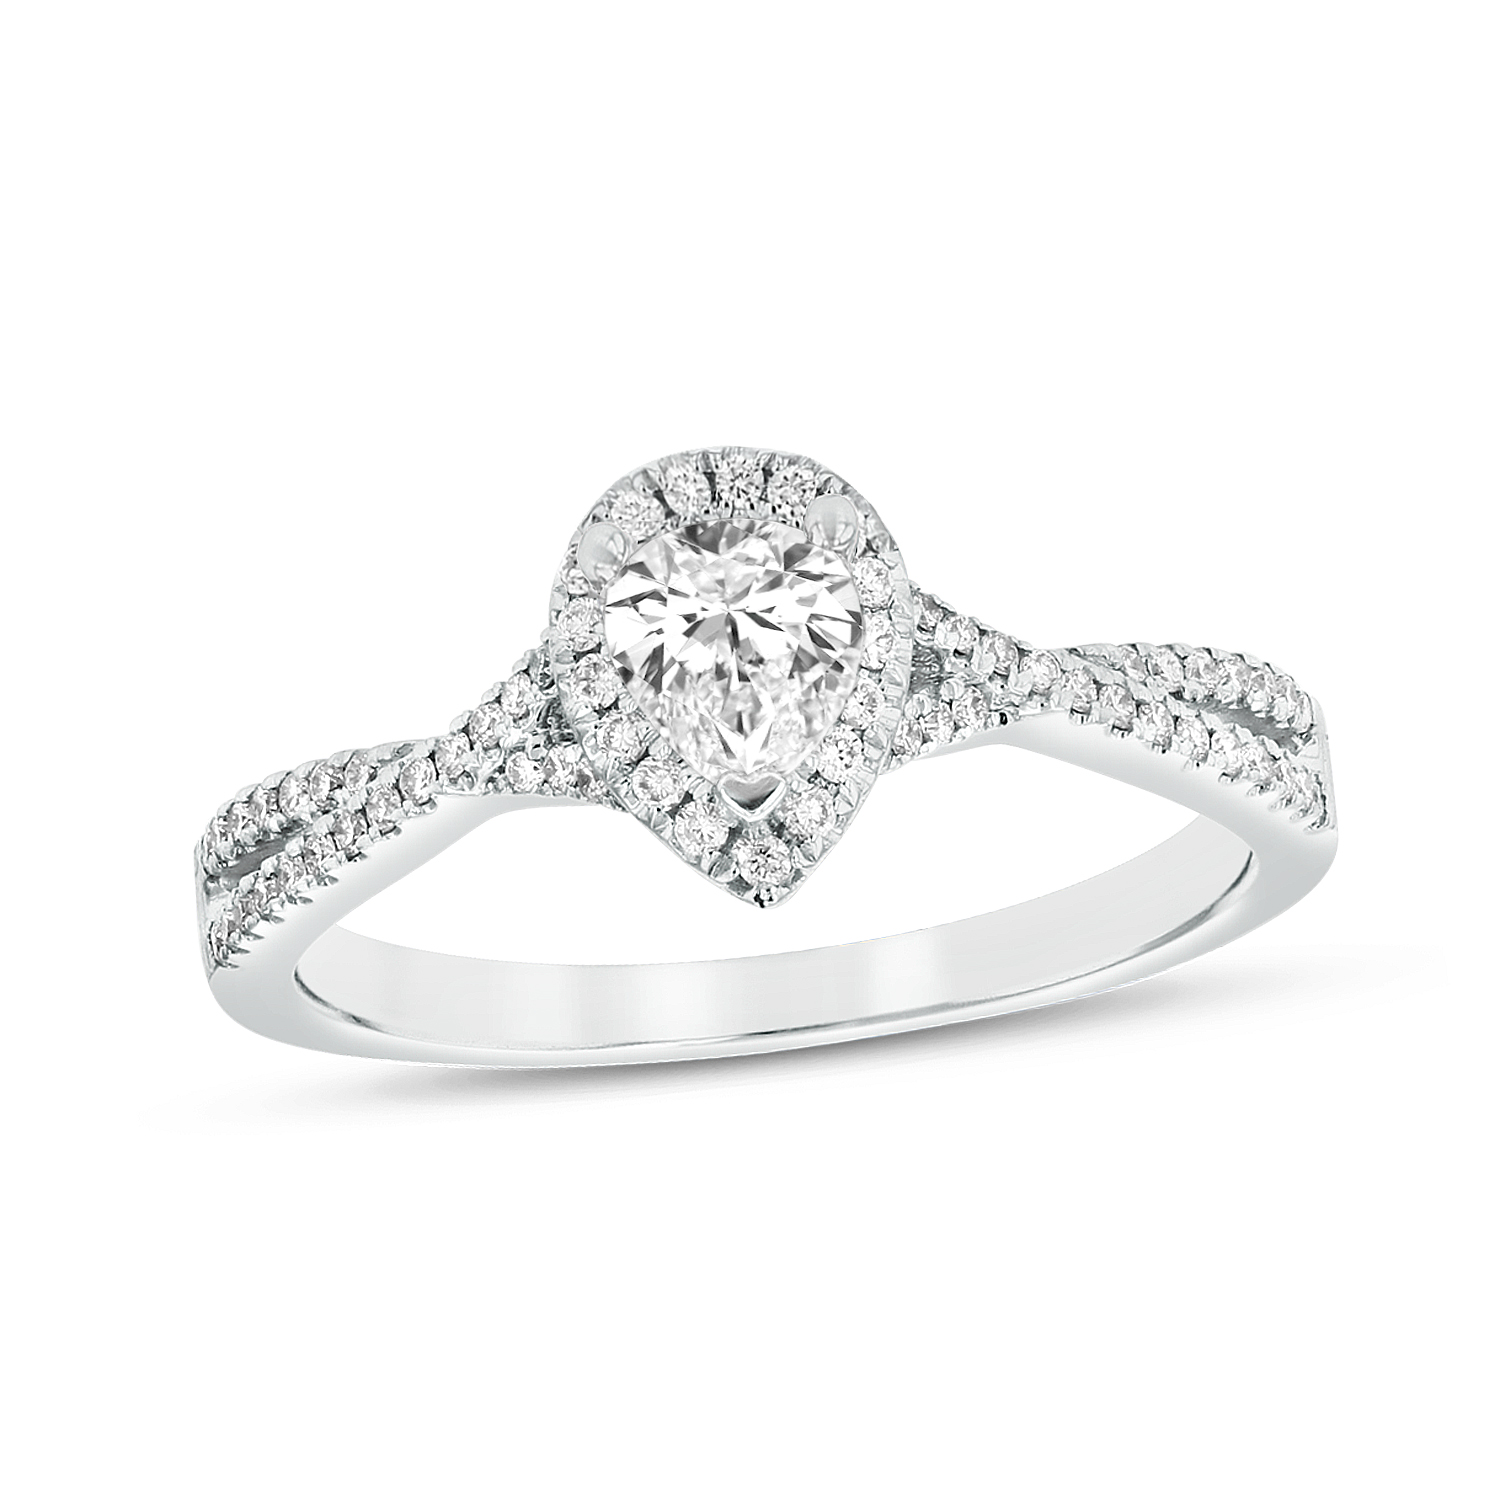 View 0.62ctw Diamond Engagement Ring in Platinum